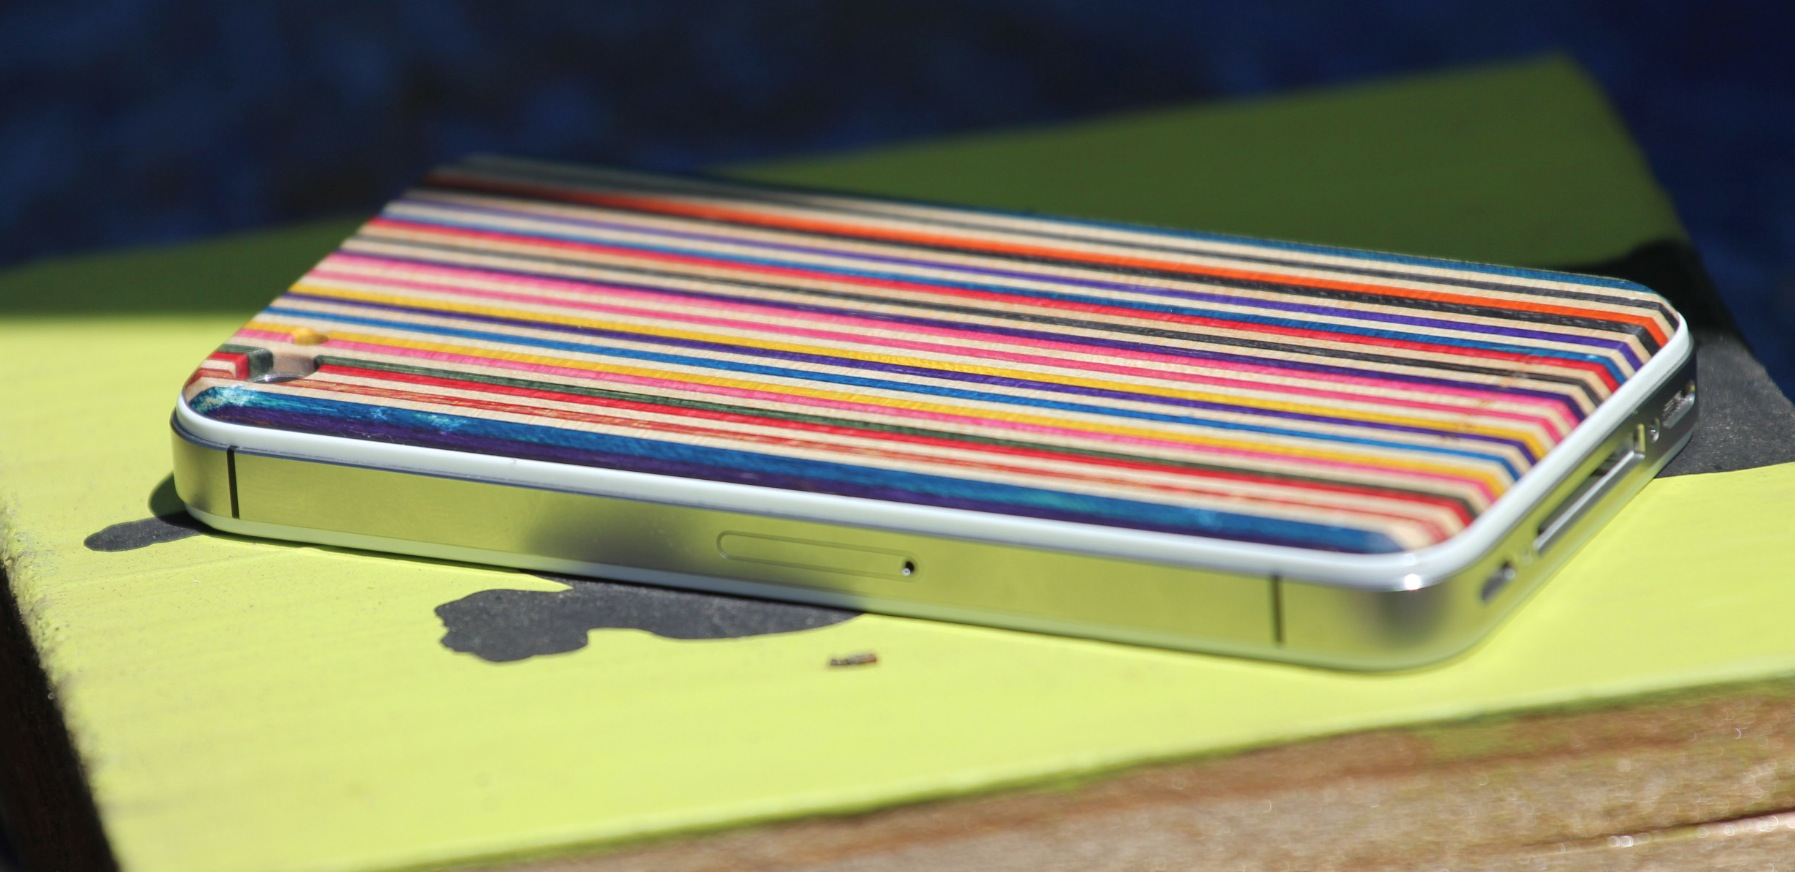 The SkateBack: Sheathing your iPhone in recycled skateboards is cool, but is it practical?